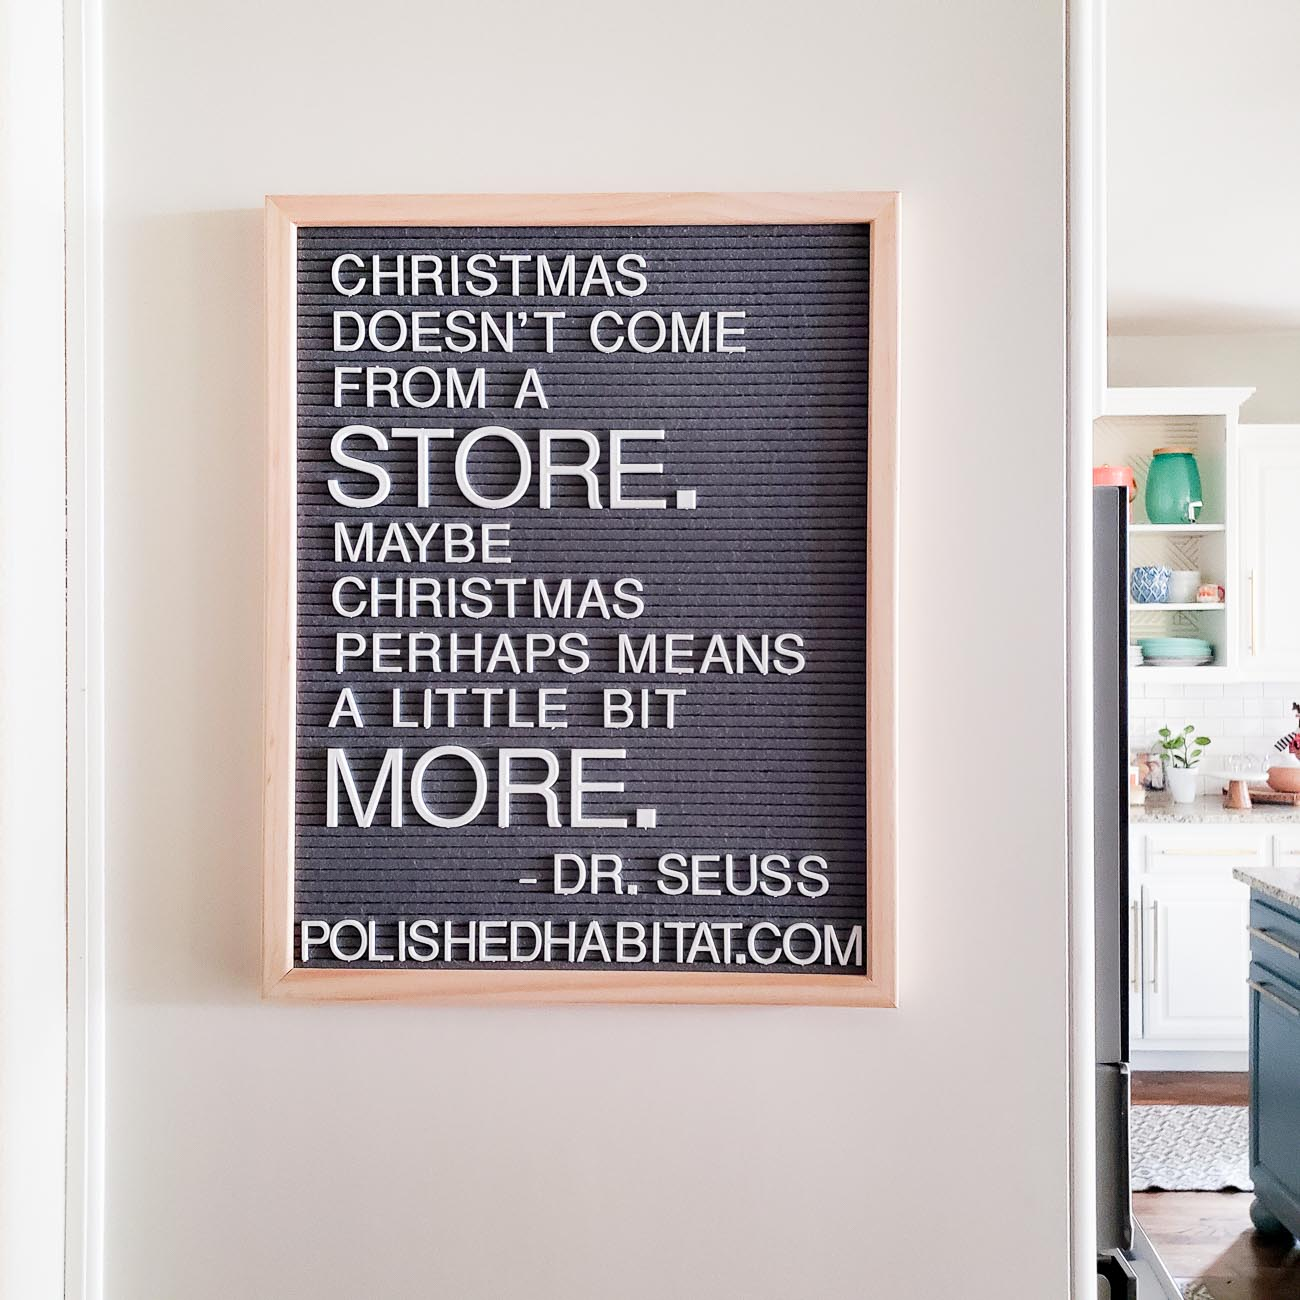 Grinch quote on gray letter board in the kitchen